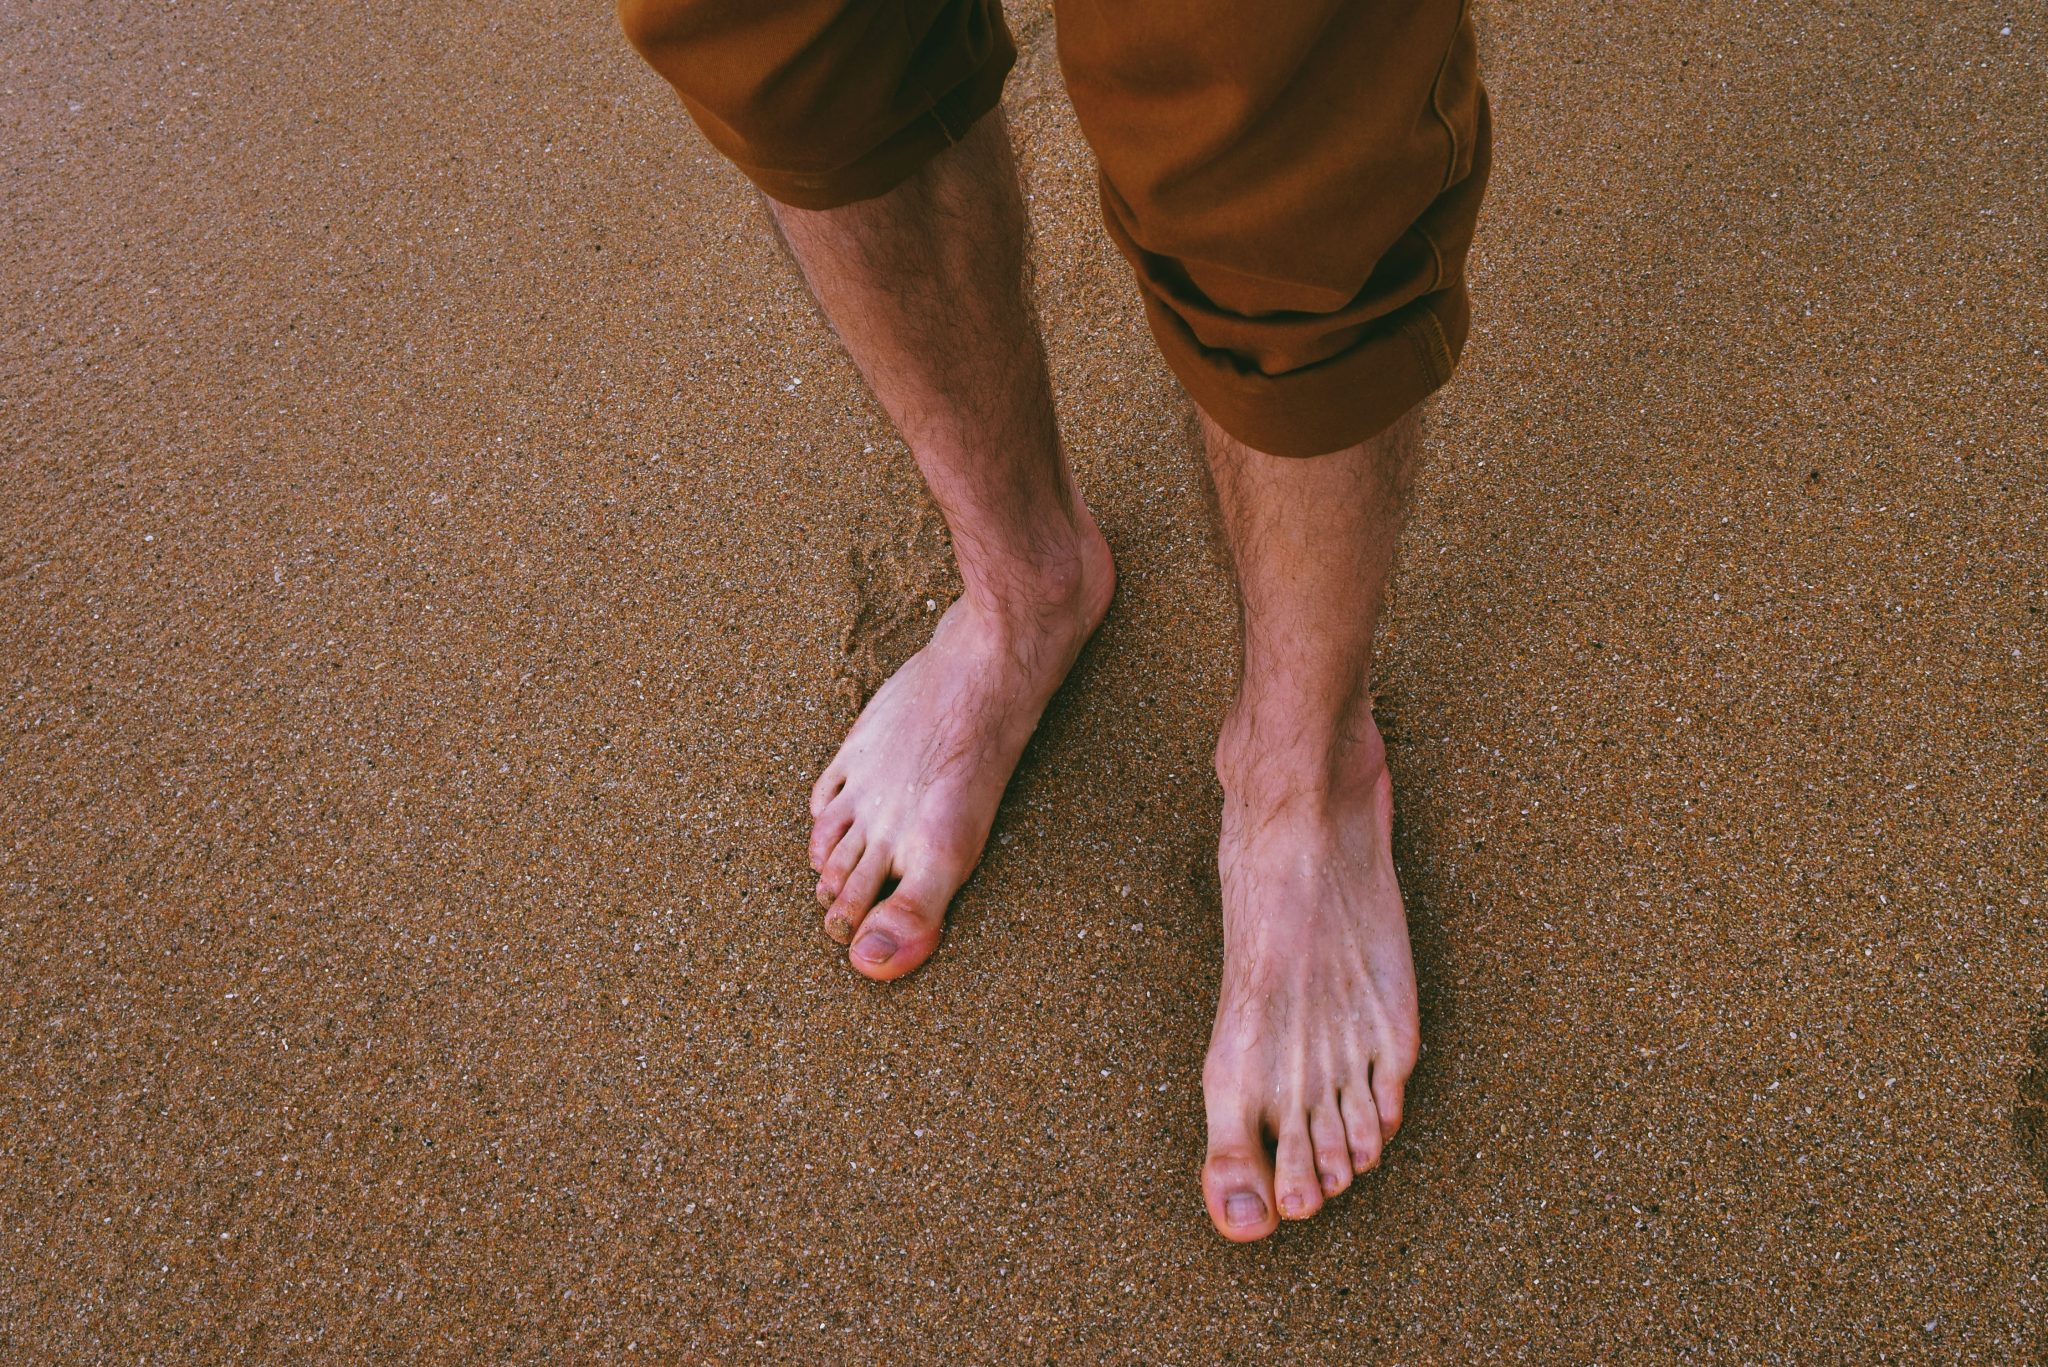 close-up-photo-of-person-standing-on-seashore-1249546